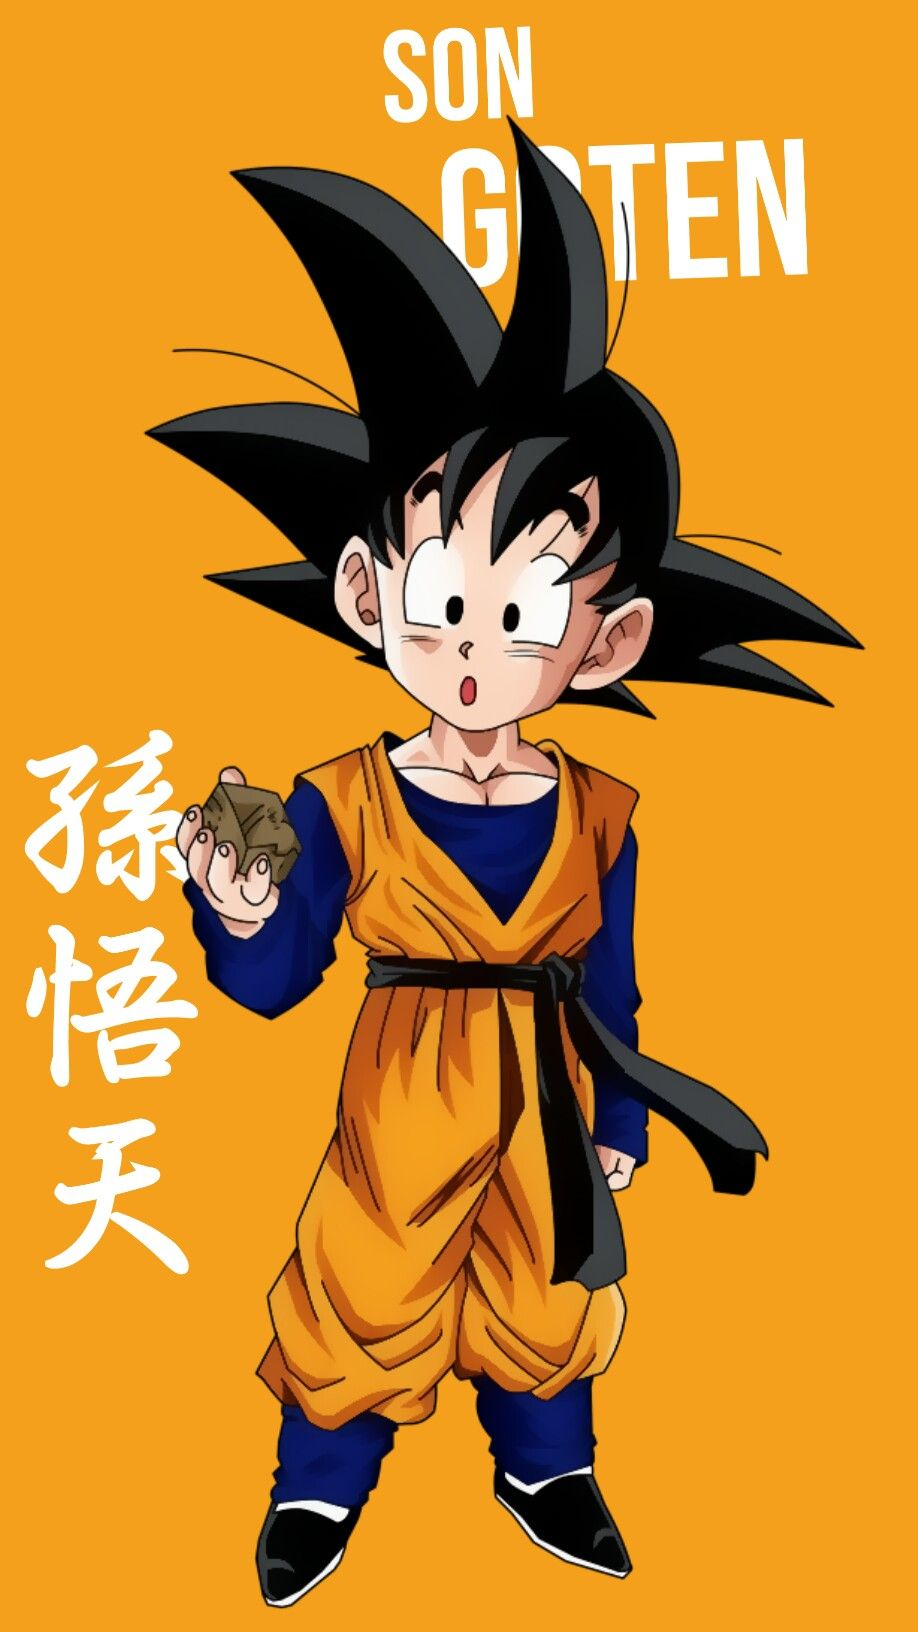 Son Goten Anime Character Names Anime Characters Boy Character